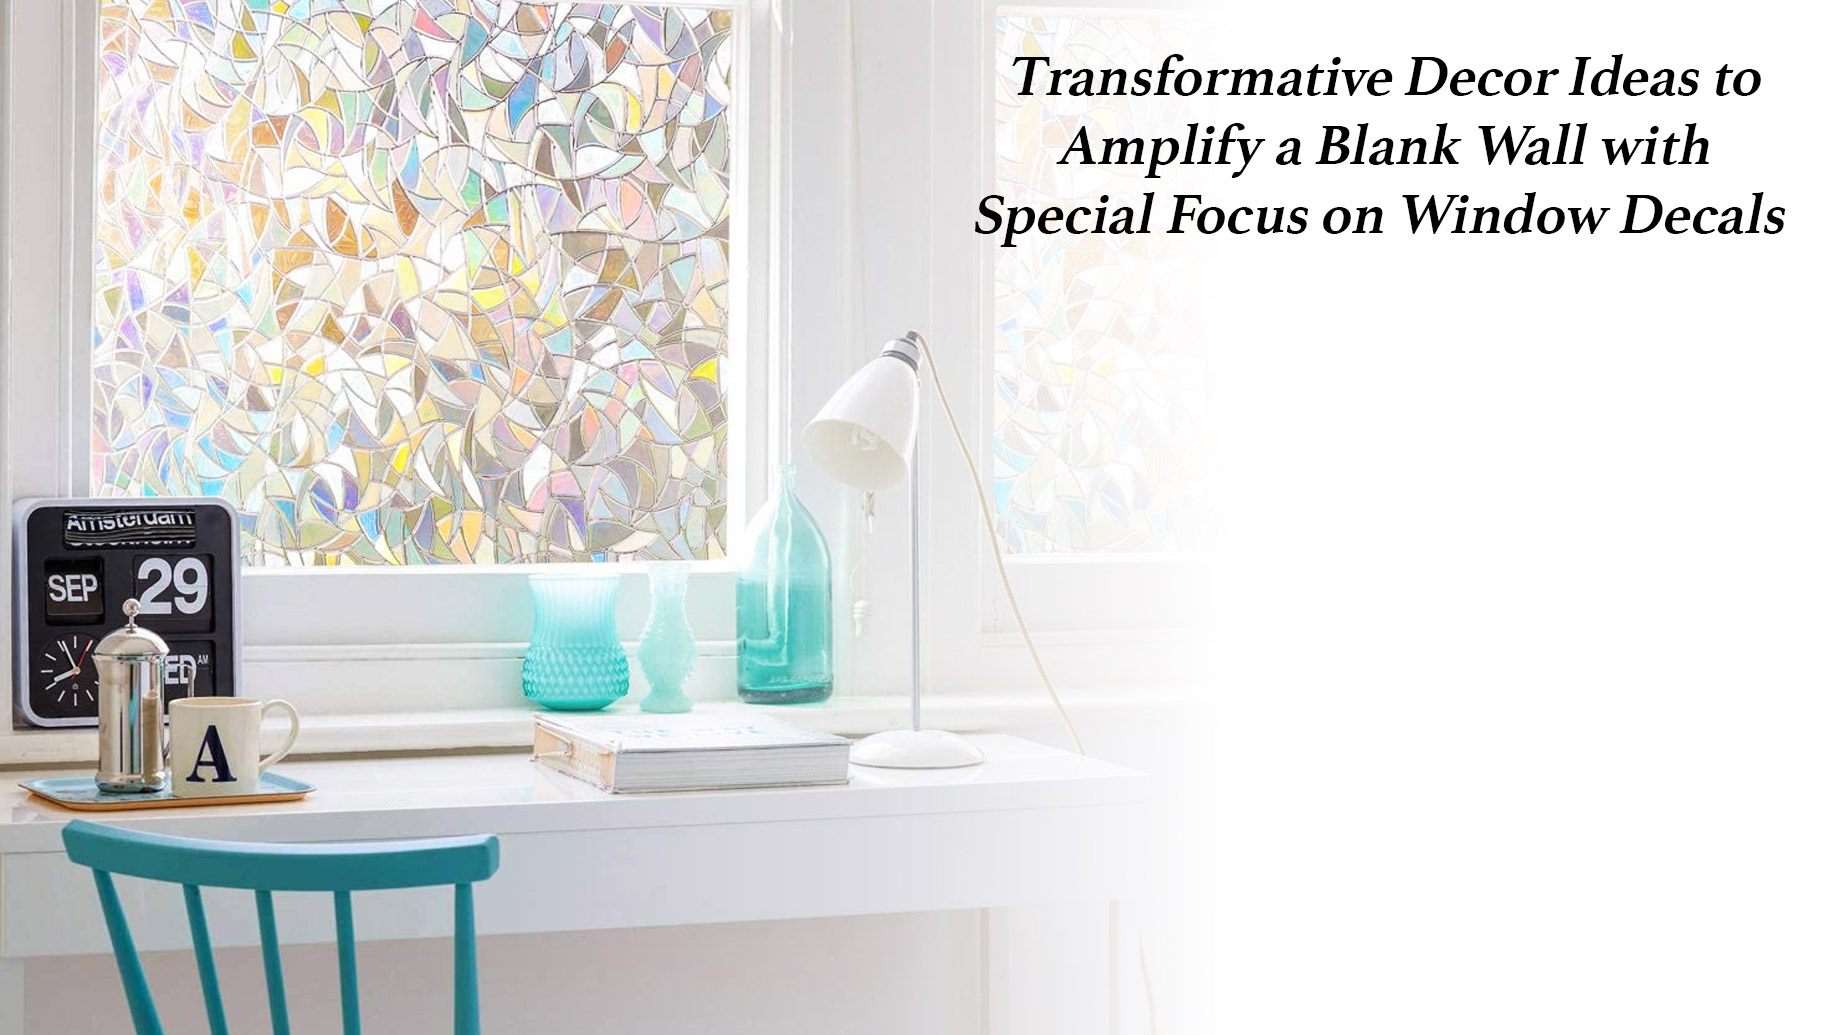 Transformative Decor Ideas to Amplify a Blank Wall with Special Focus on Window Decals